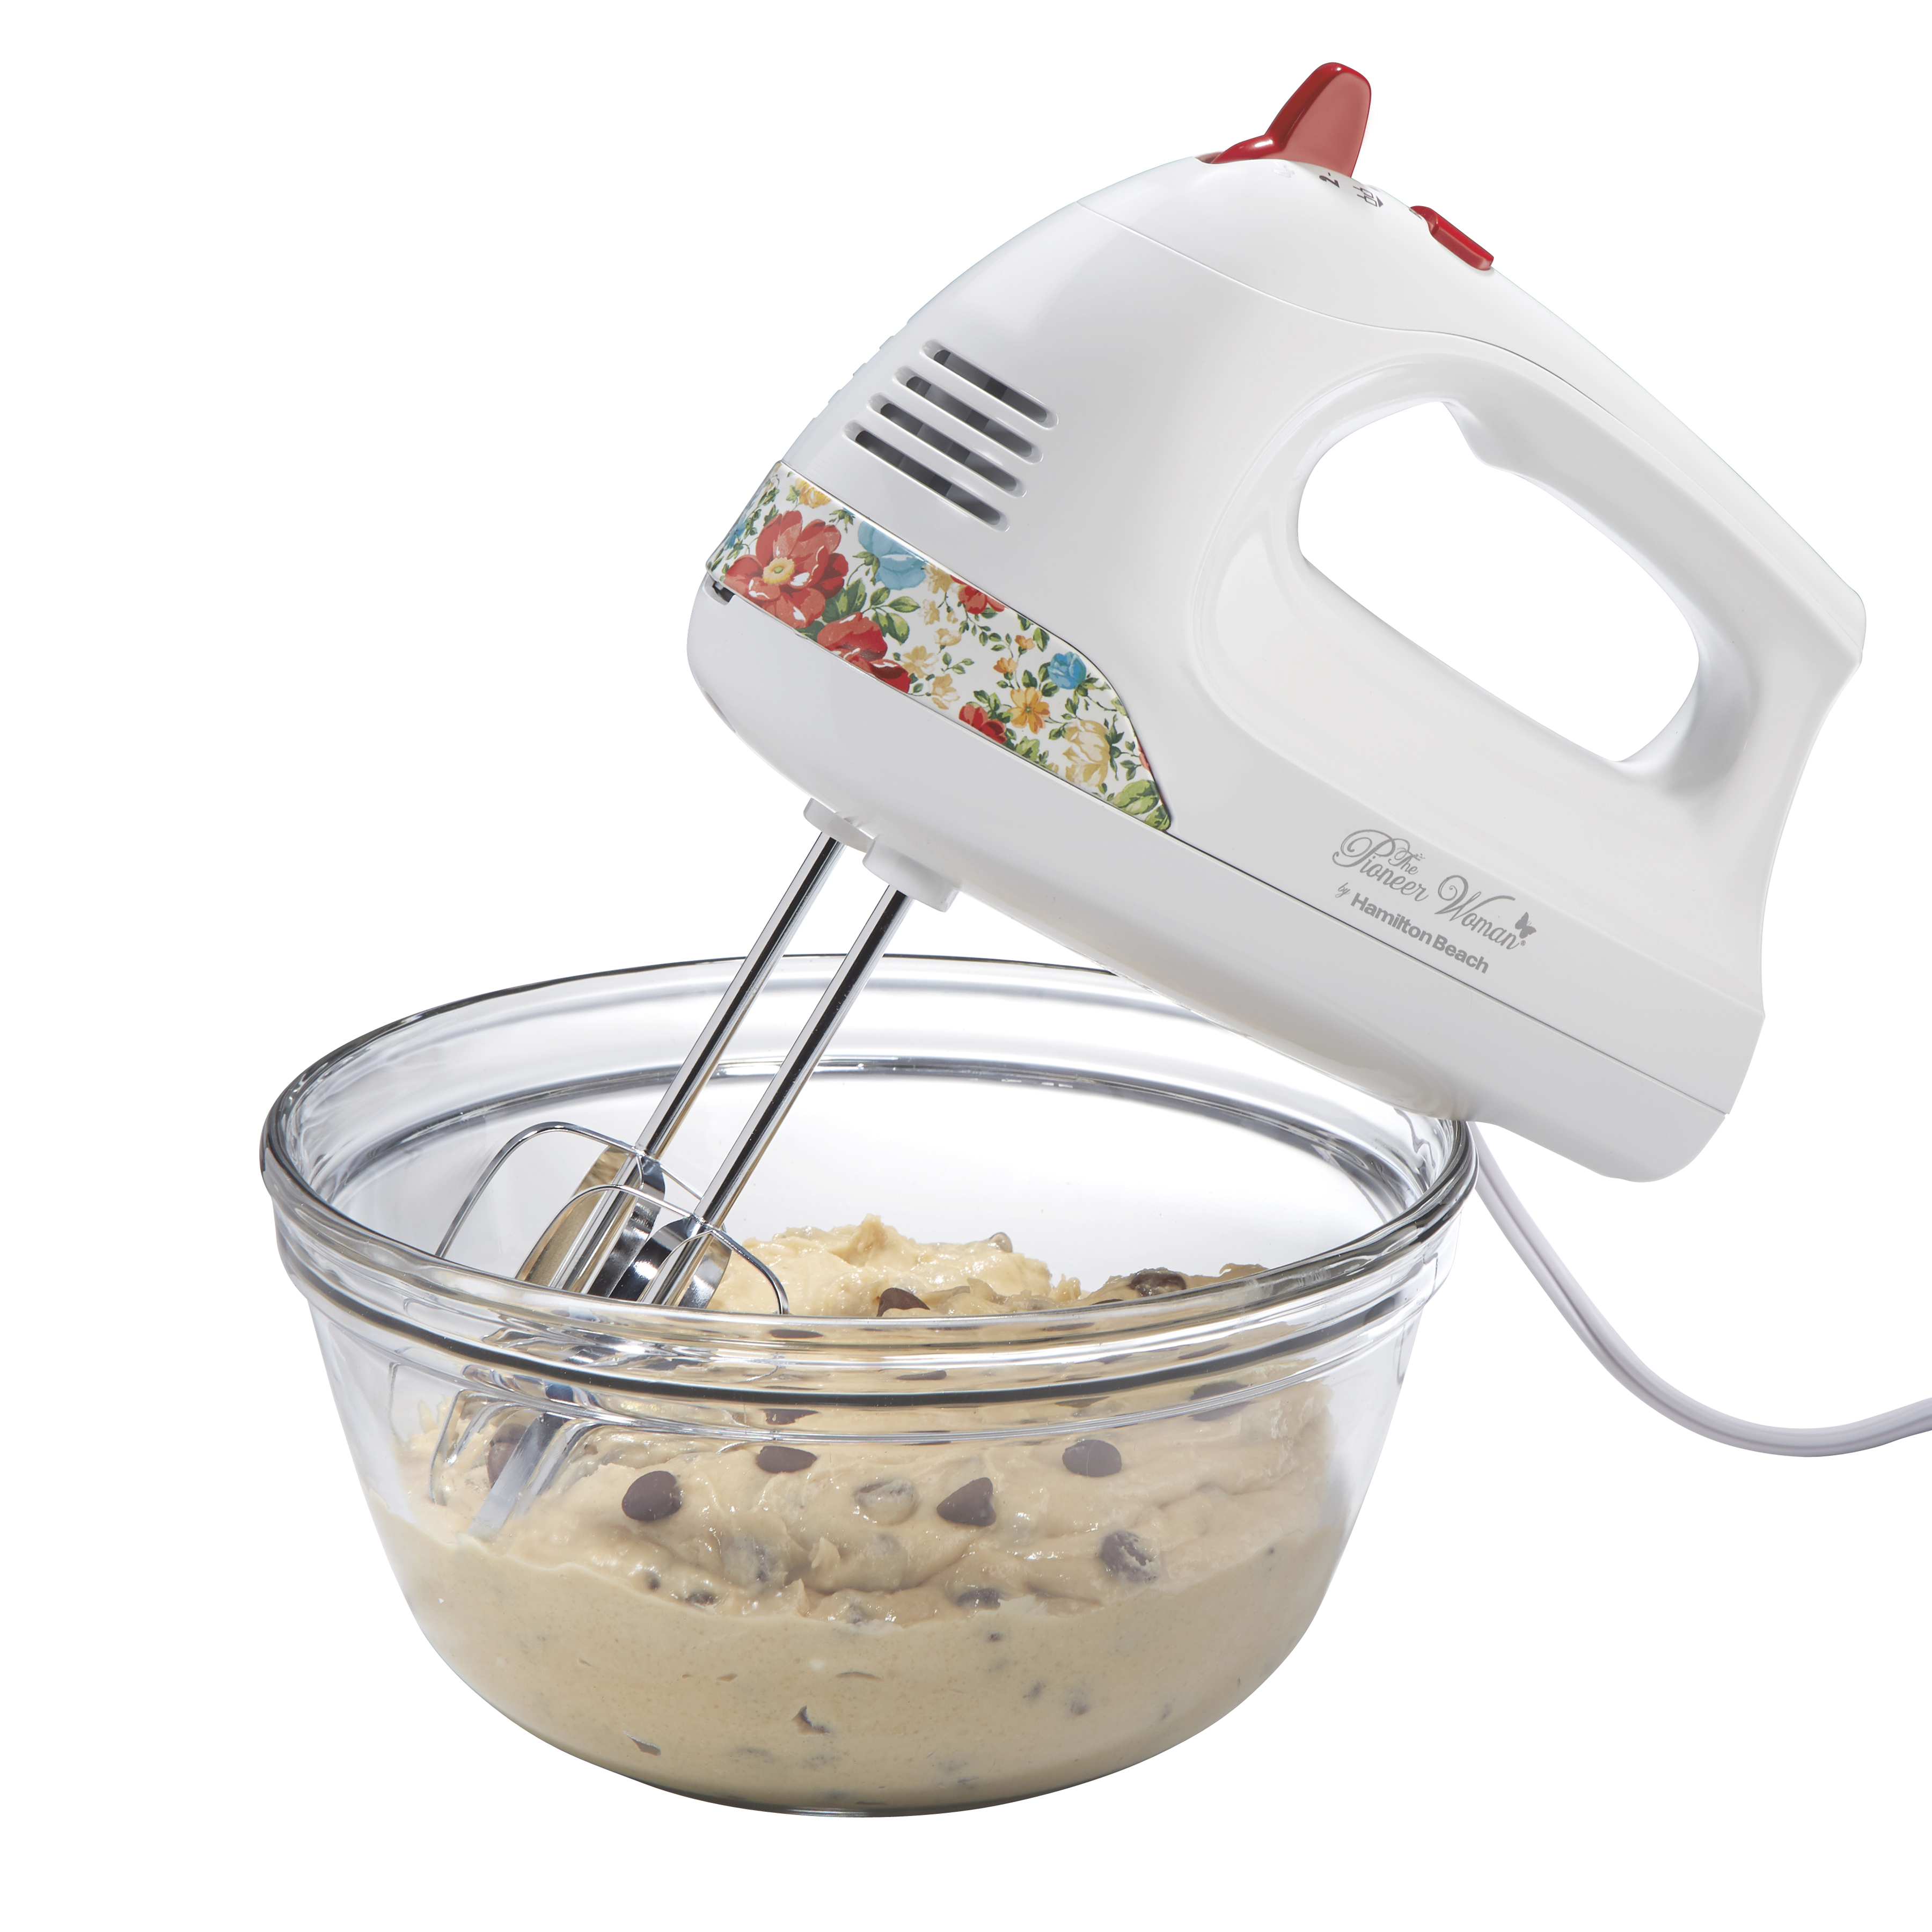 The Pioneer Woman 6 Speed Hand Mixer With Vintage Floral Design And Snap On Case Walmart Com Walmart Com